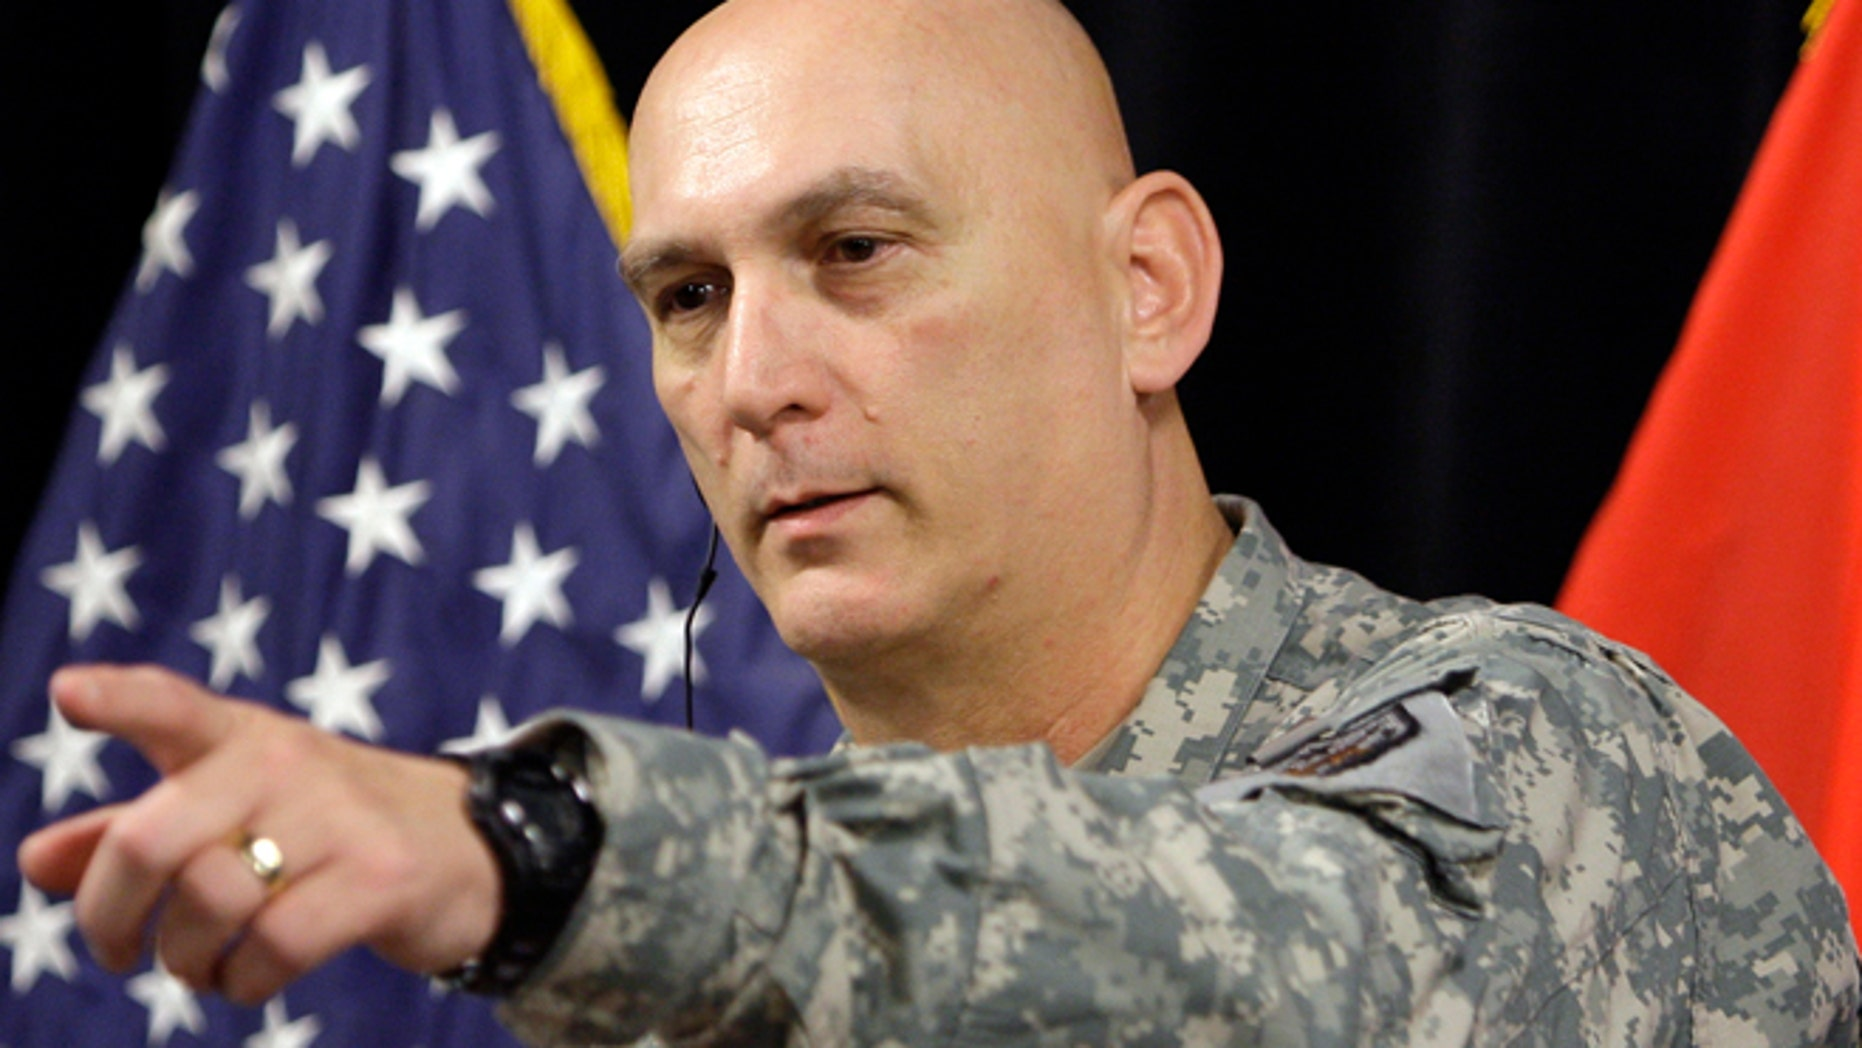 In this Jan. 1, 2010 file photo, Gen. Ray Odierno is shown at a news conference at Camp Victory in Baghdad.